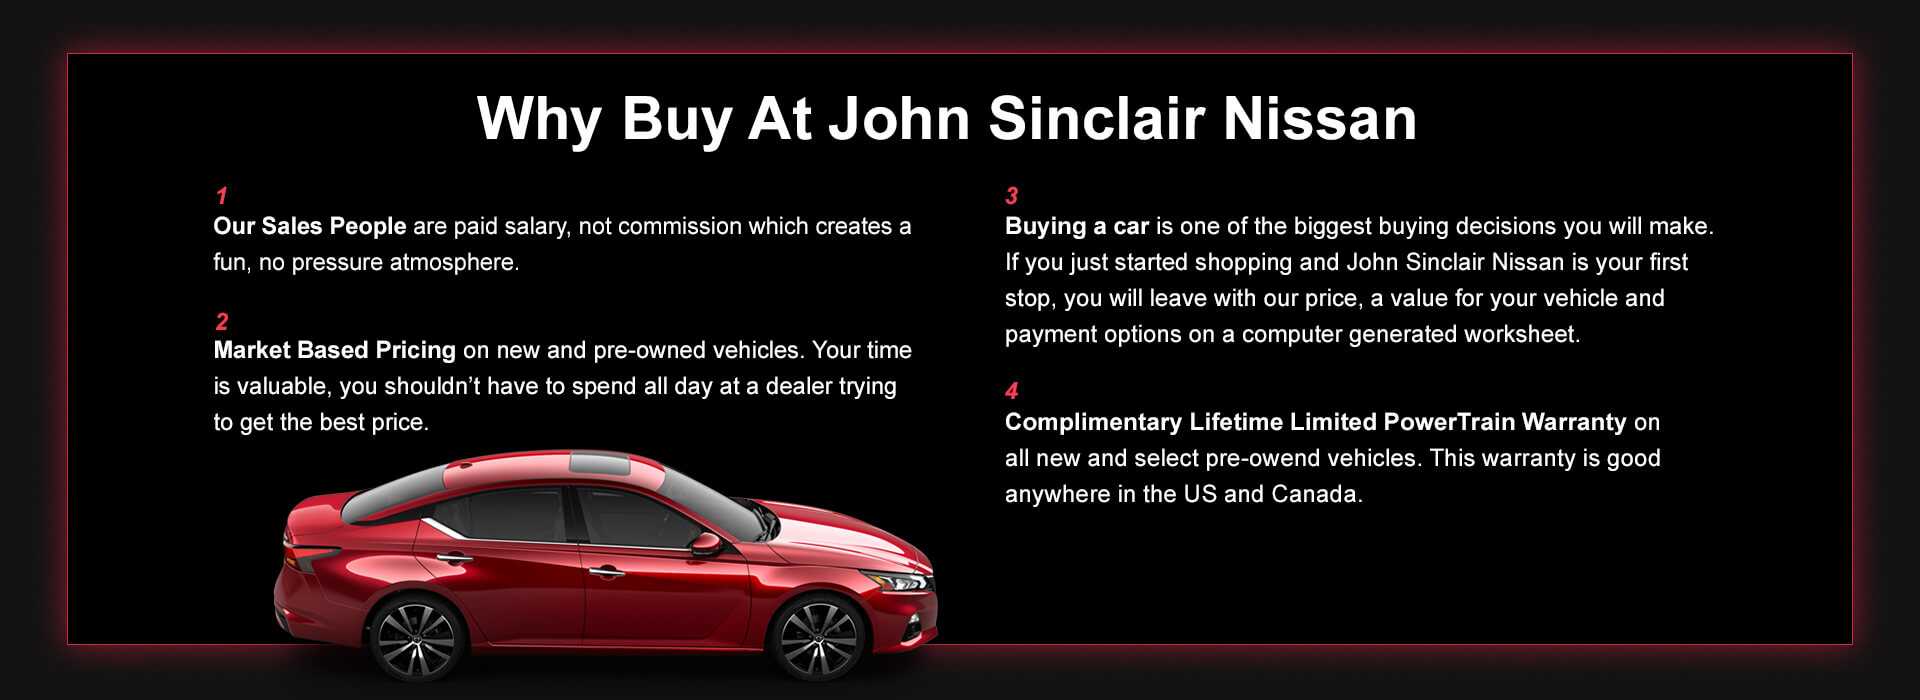 Nissan Make A Payment >> John Sinclair Nissan New Used Nissan Car Dealer Cape